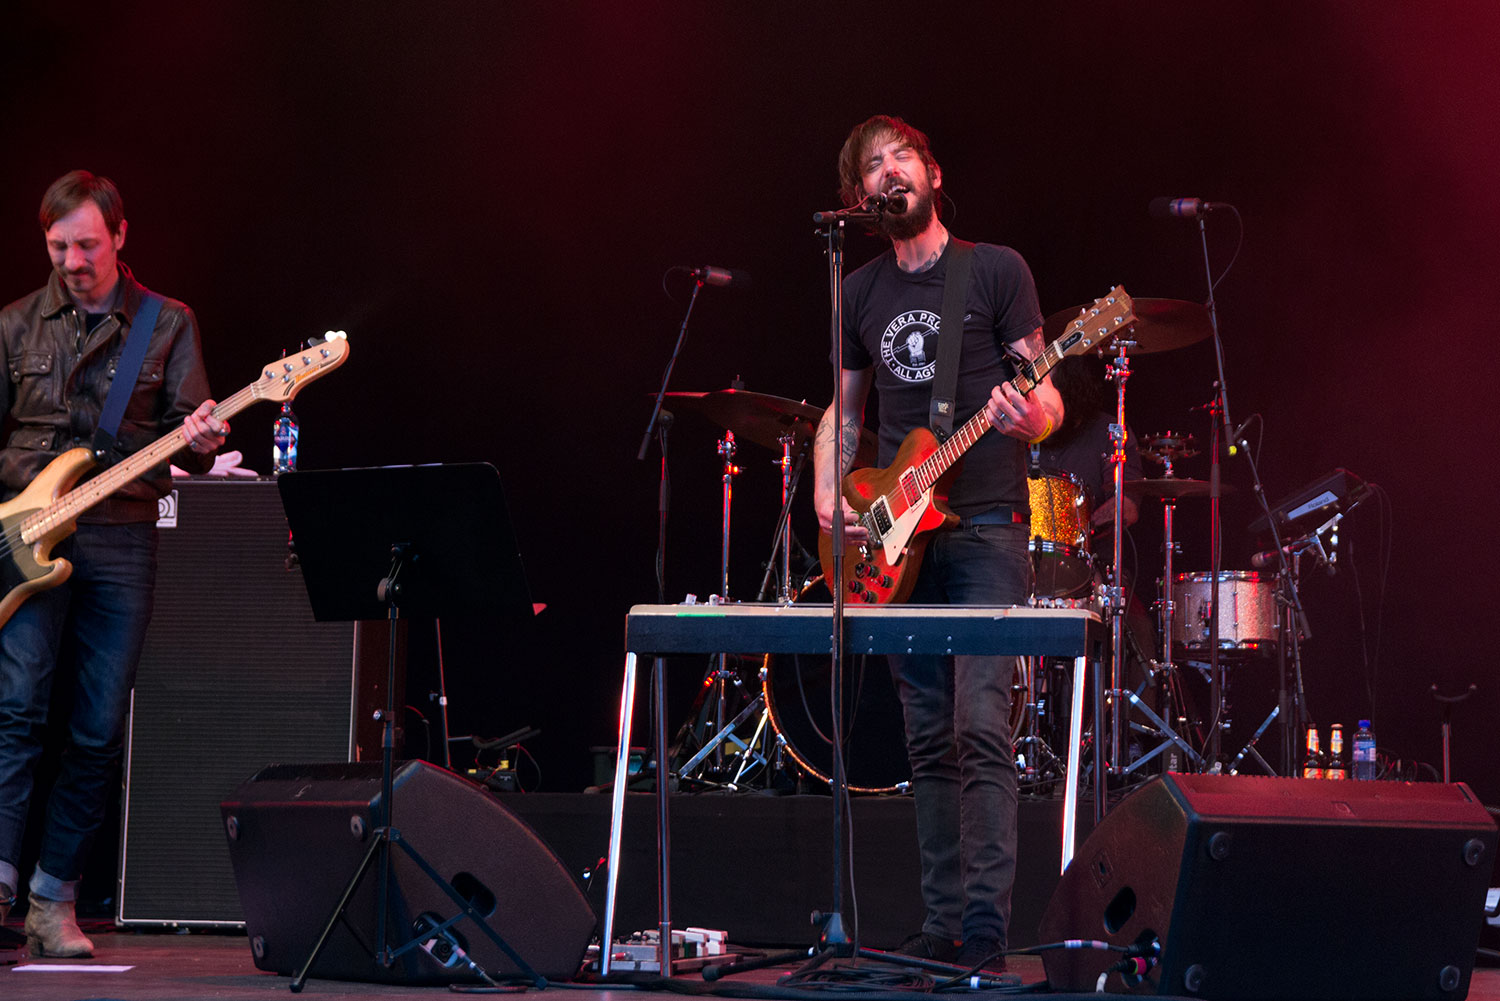 Band of Horses live at Piknik i Parken, Oslo Norway. June 2016.